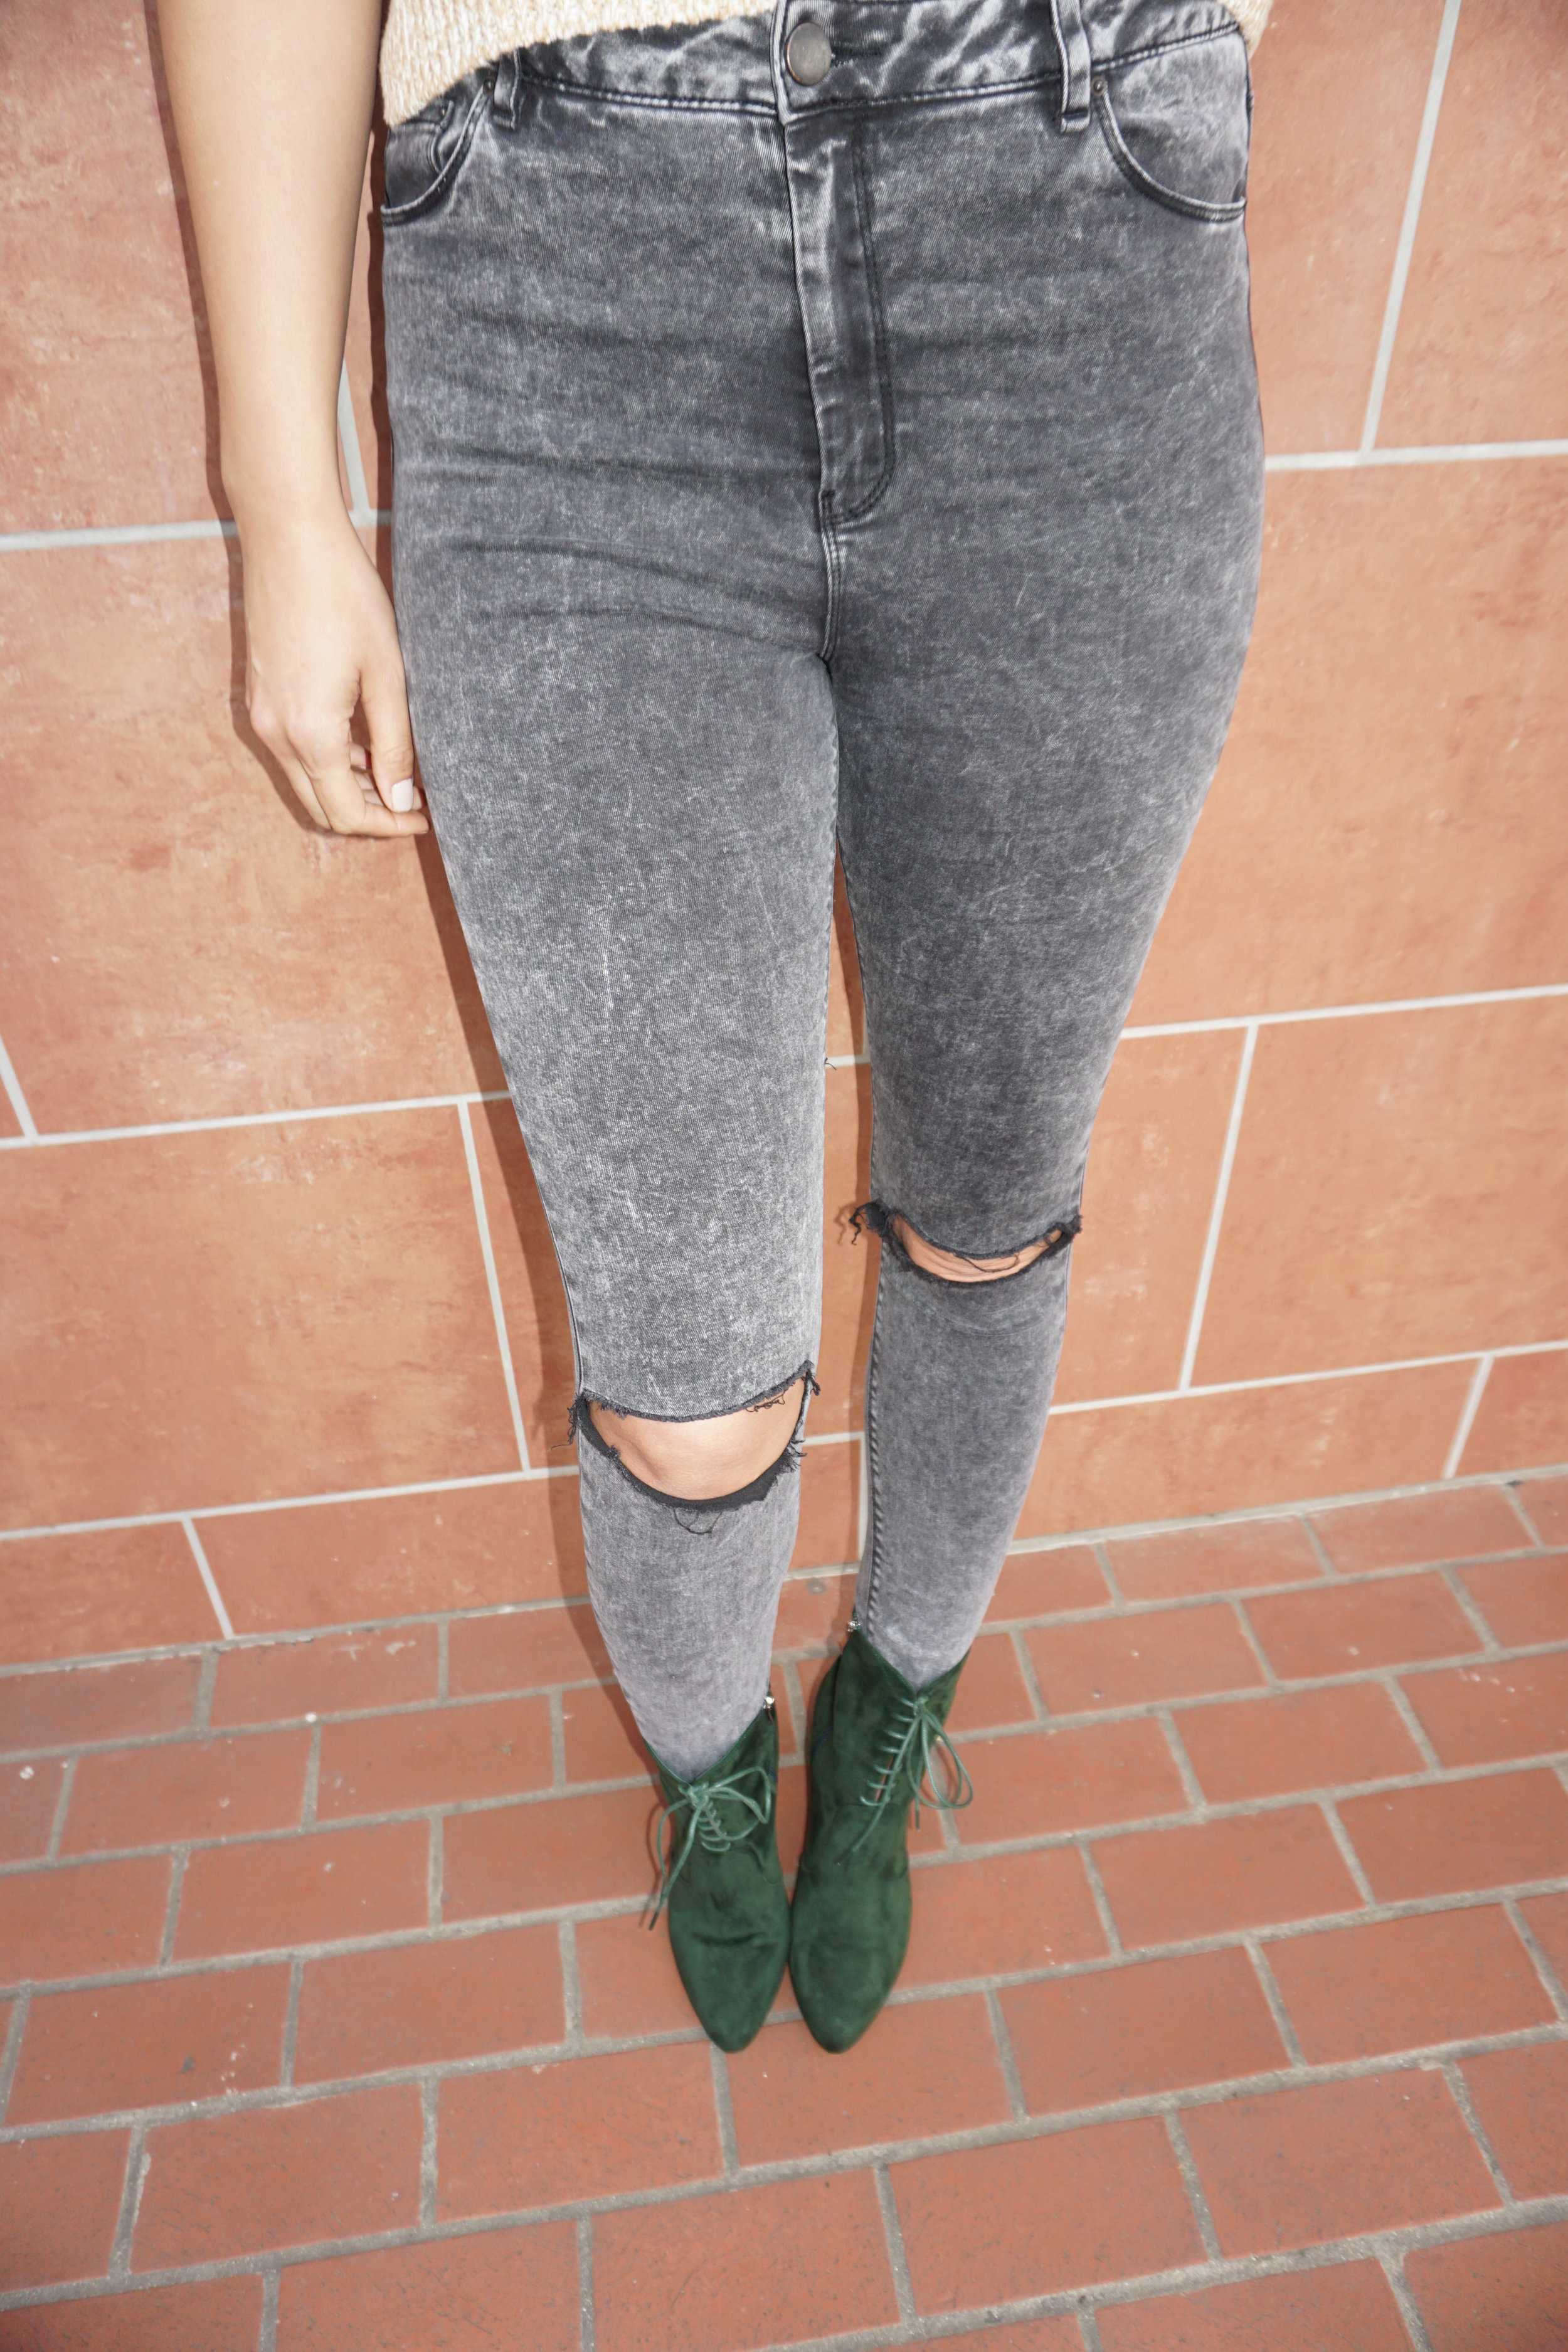 Alicia Jay Blog ASOS tall ripped skinny jeans smash shoes Joyce Forest Green Natural Hair Tall Team Girls spring fro cropped sweater H&M suede 7.JPG